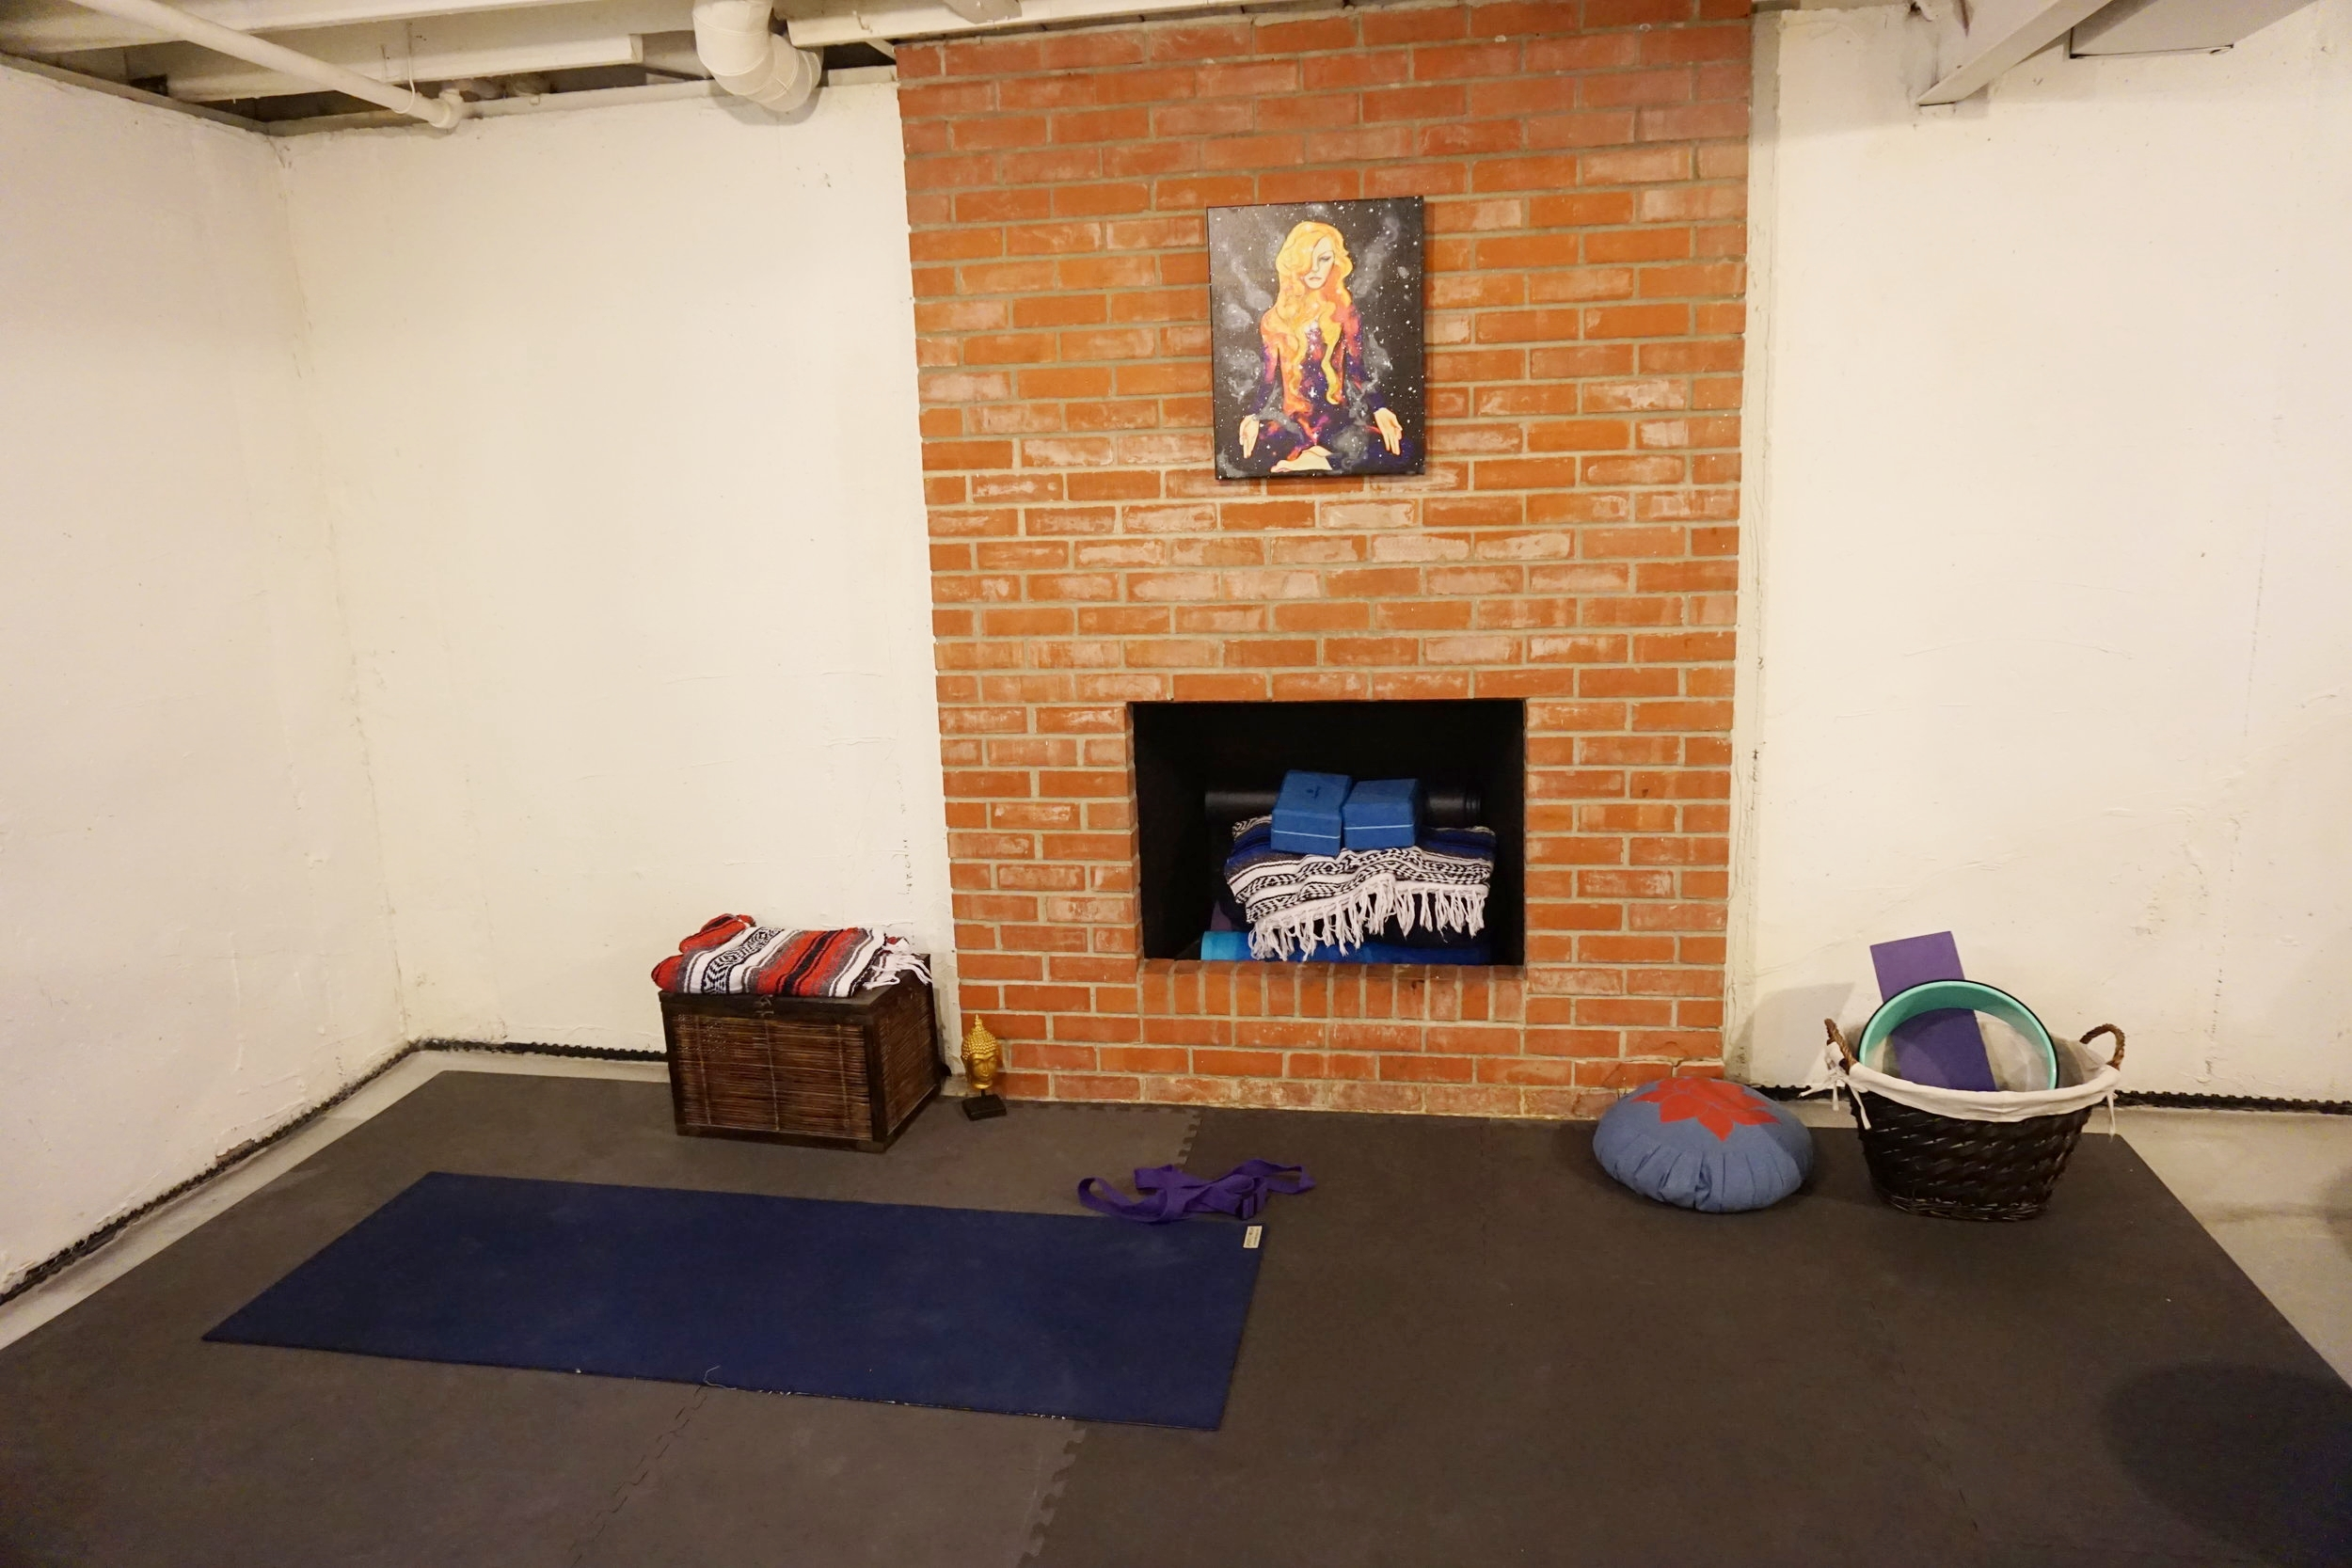 Believe it or not this is the same space. You might recognize it from YouTube. I just don't show the rest of the basement. :)